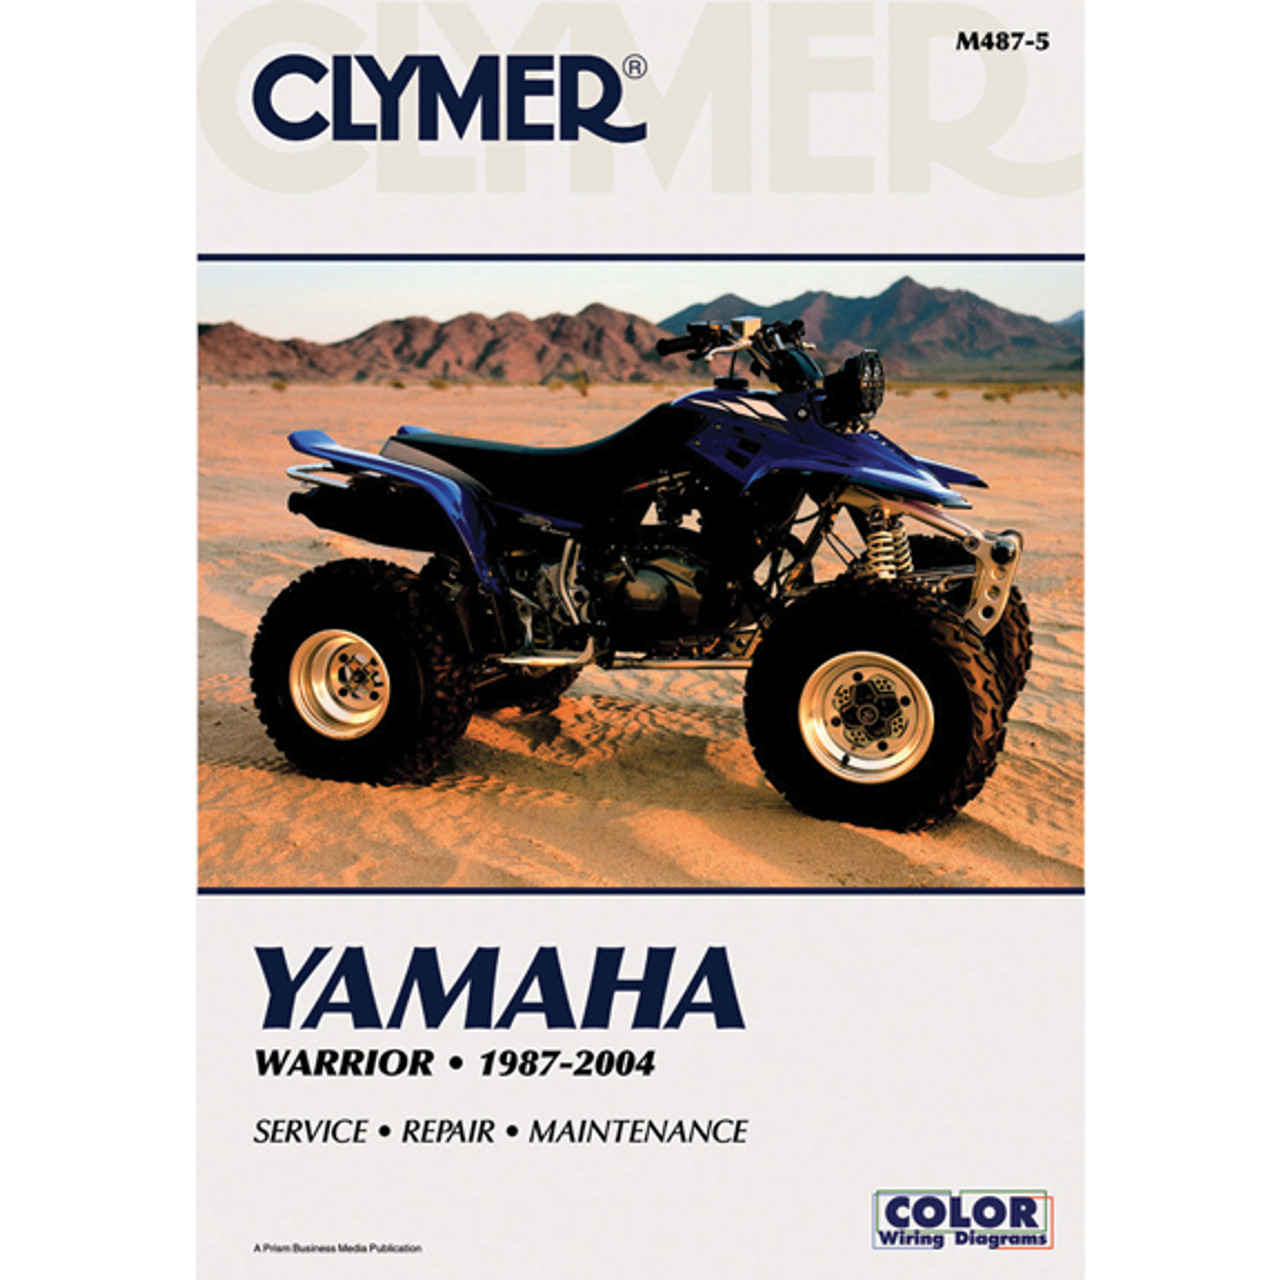 Clymer M488-5 Service Shop Repair Manual Yamaha Blaster 1988-2005